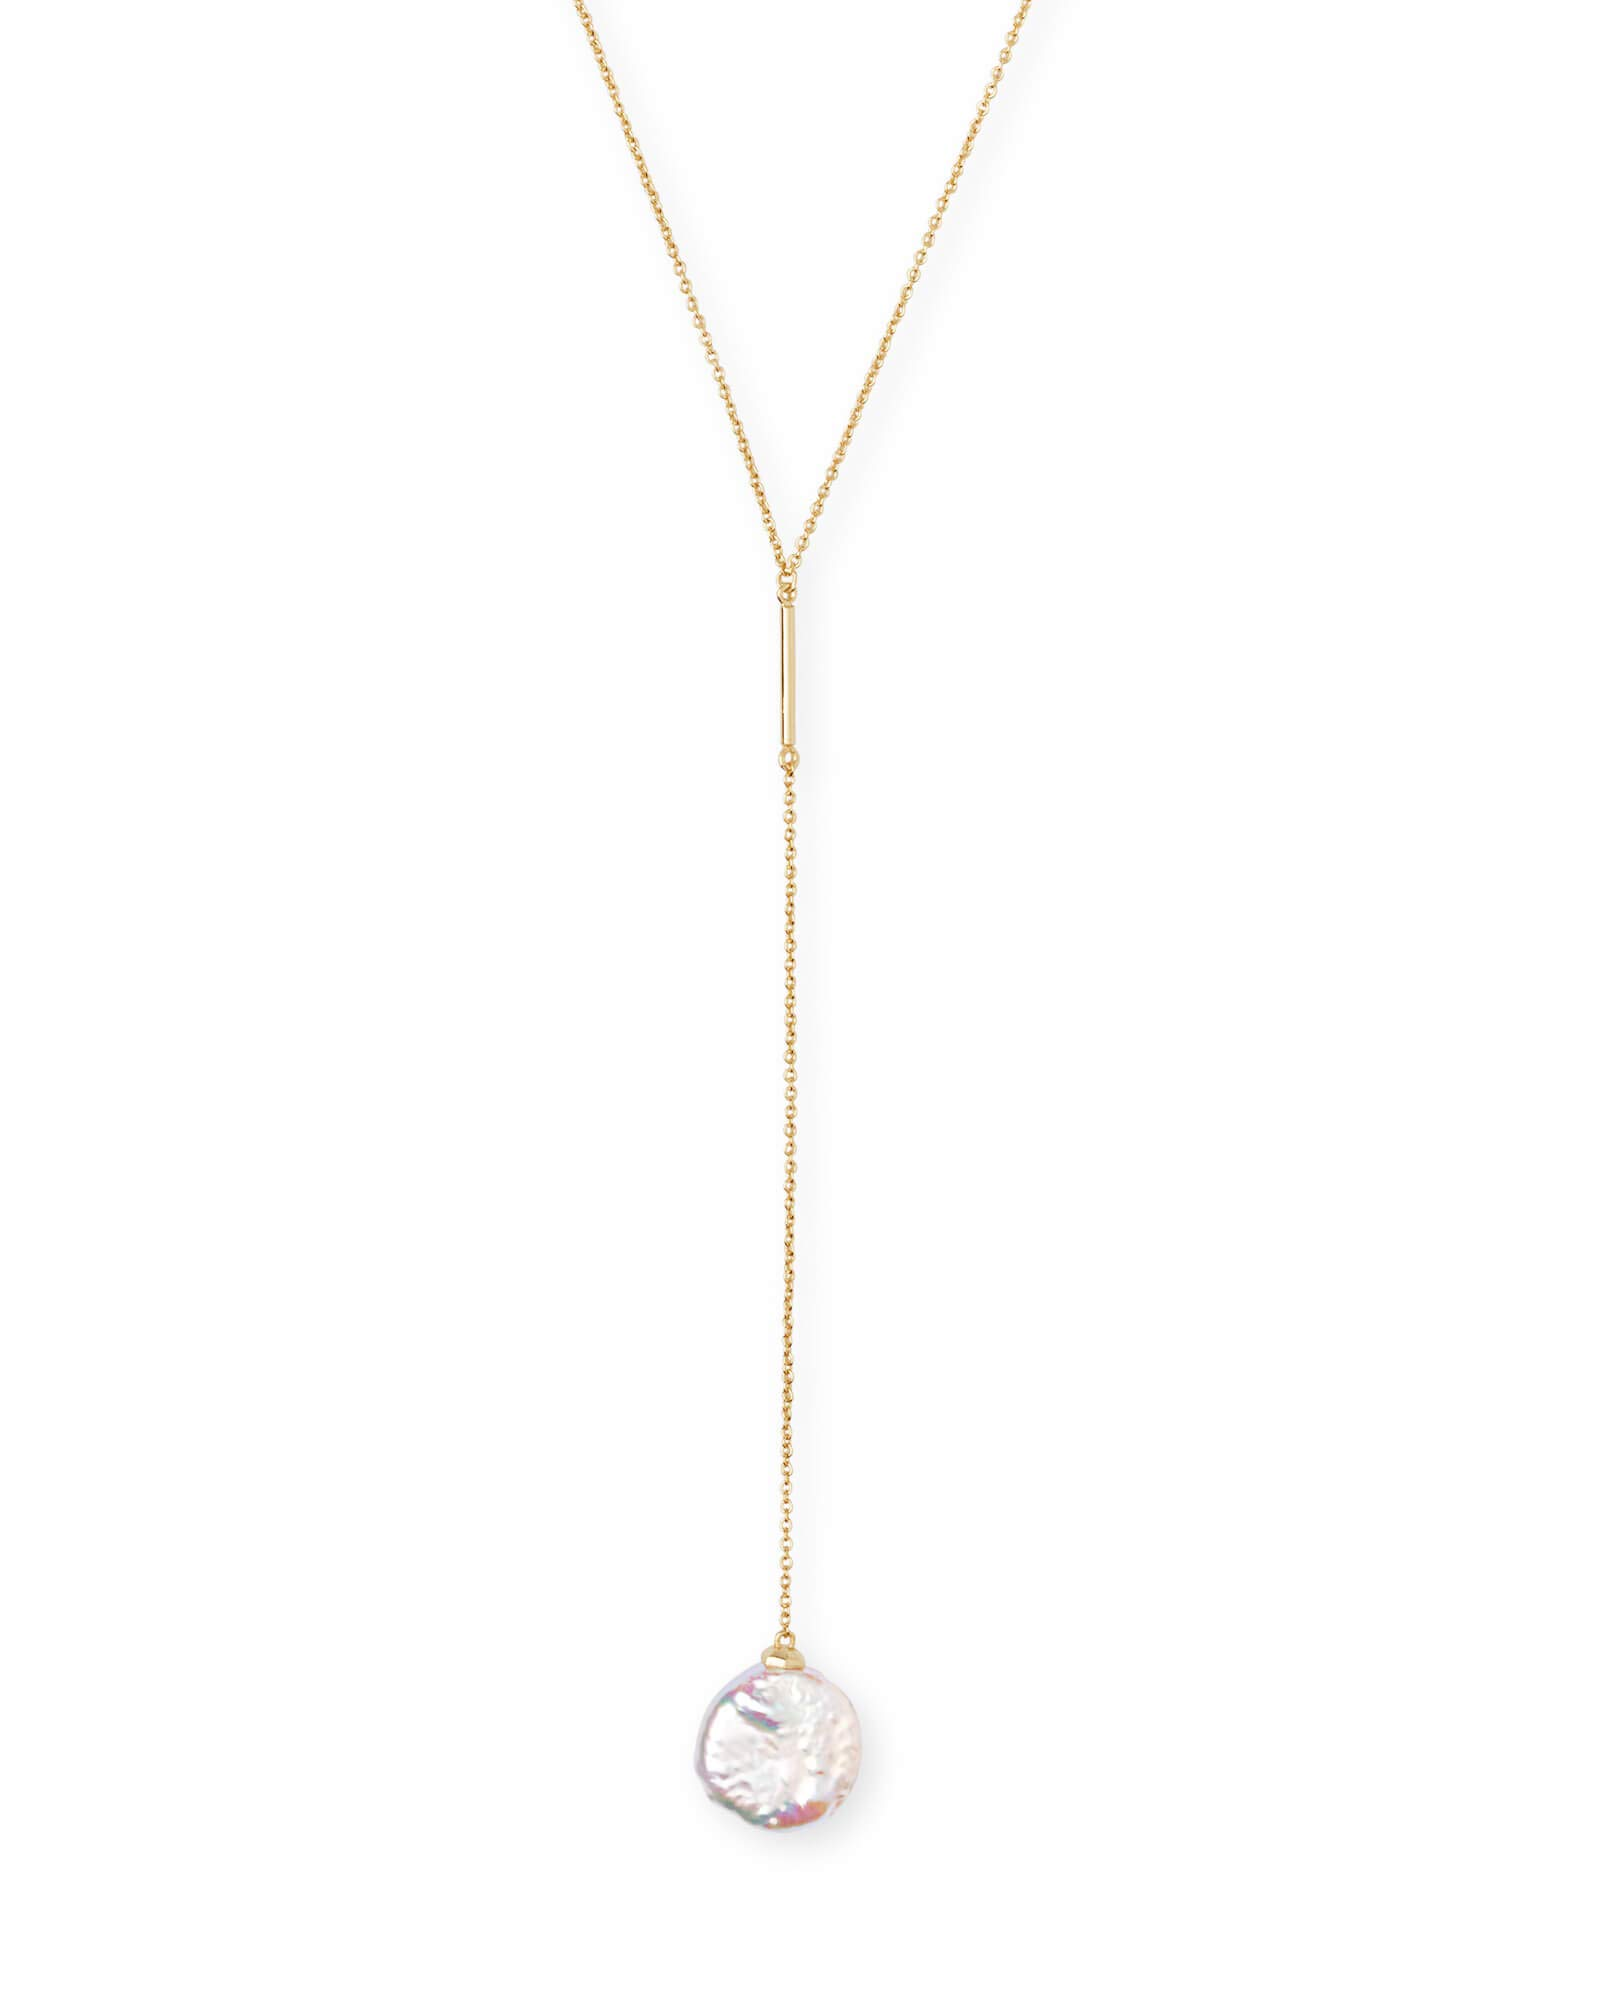 Kendra Scott Andi Gold Y Necklace in Pearl by Kendra Scott